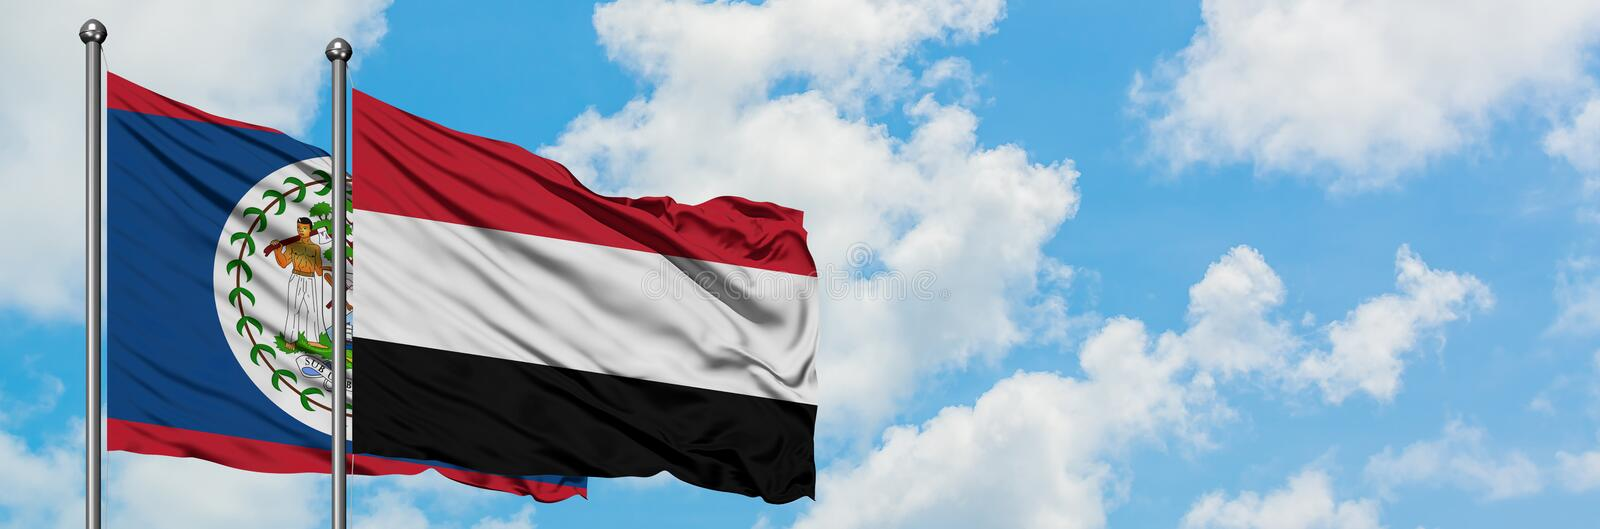 Belize and Yemen flag waving in the wind against white cloudy blue sky together. Diplomacy concept, international relations. Consul, diplomat, ambassador royalty free stock images